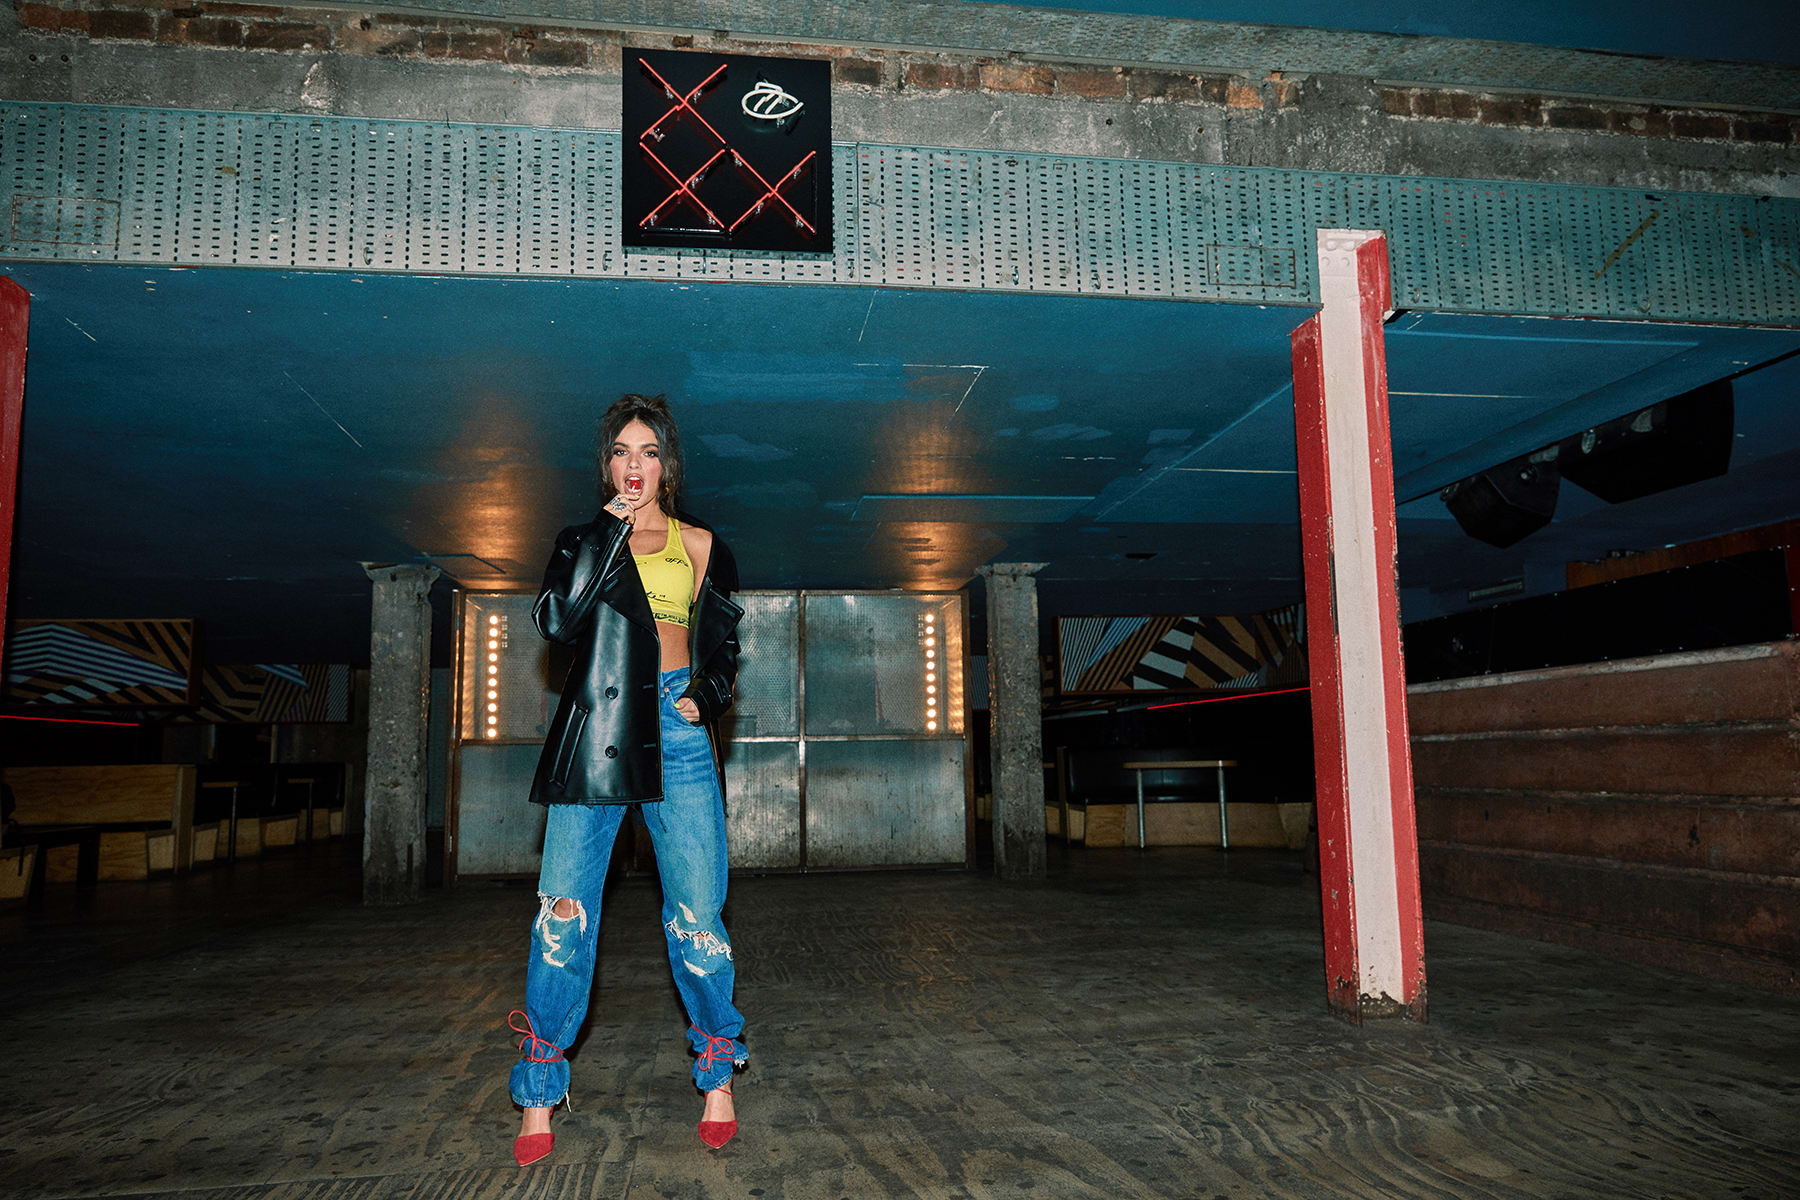 La La wears COMME DES GARCONS PVC Peacoat, Nike x Off-White NRG Bra and LEVI'S VINTAGE CLOTHING 1955 501 Jeans